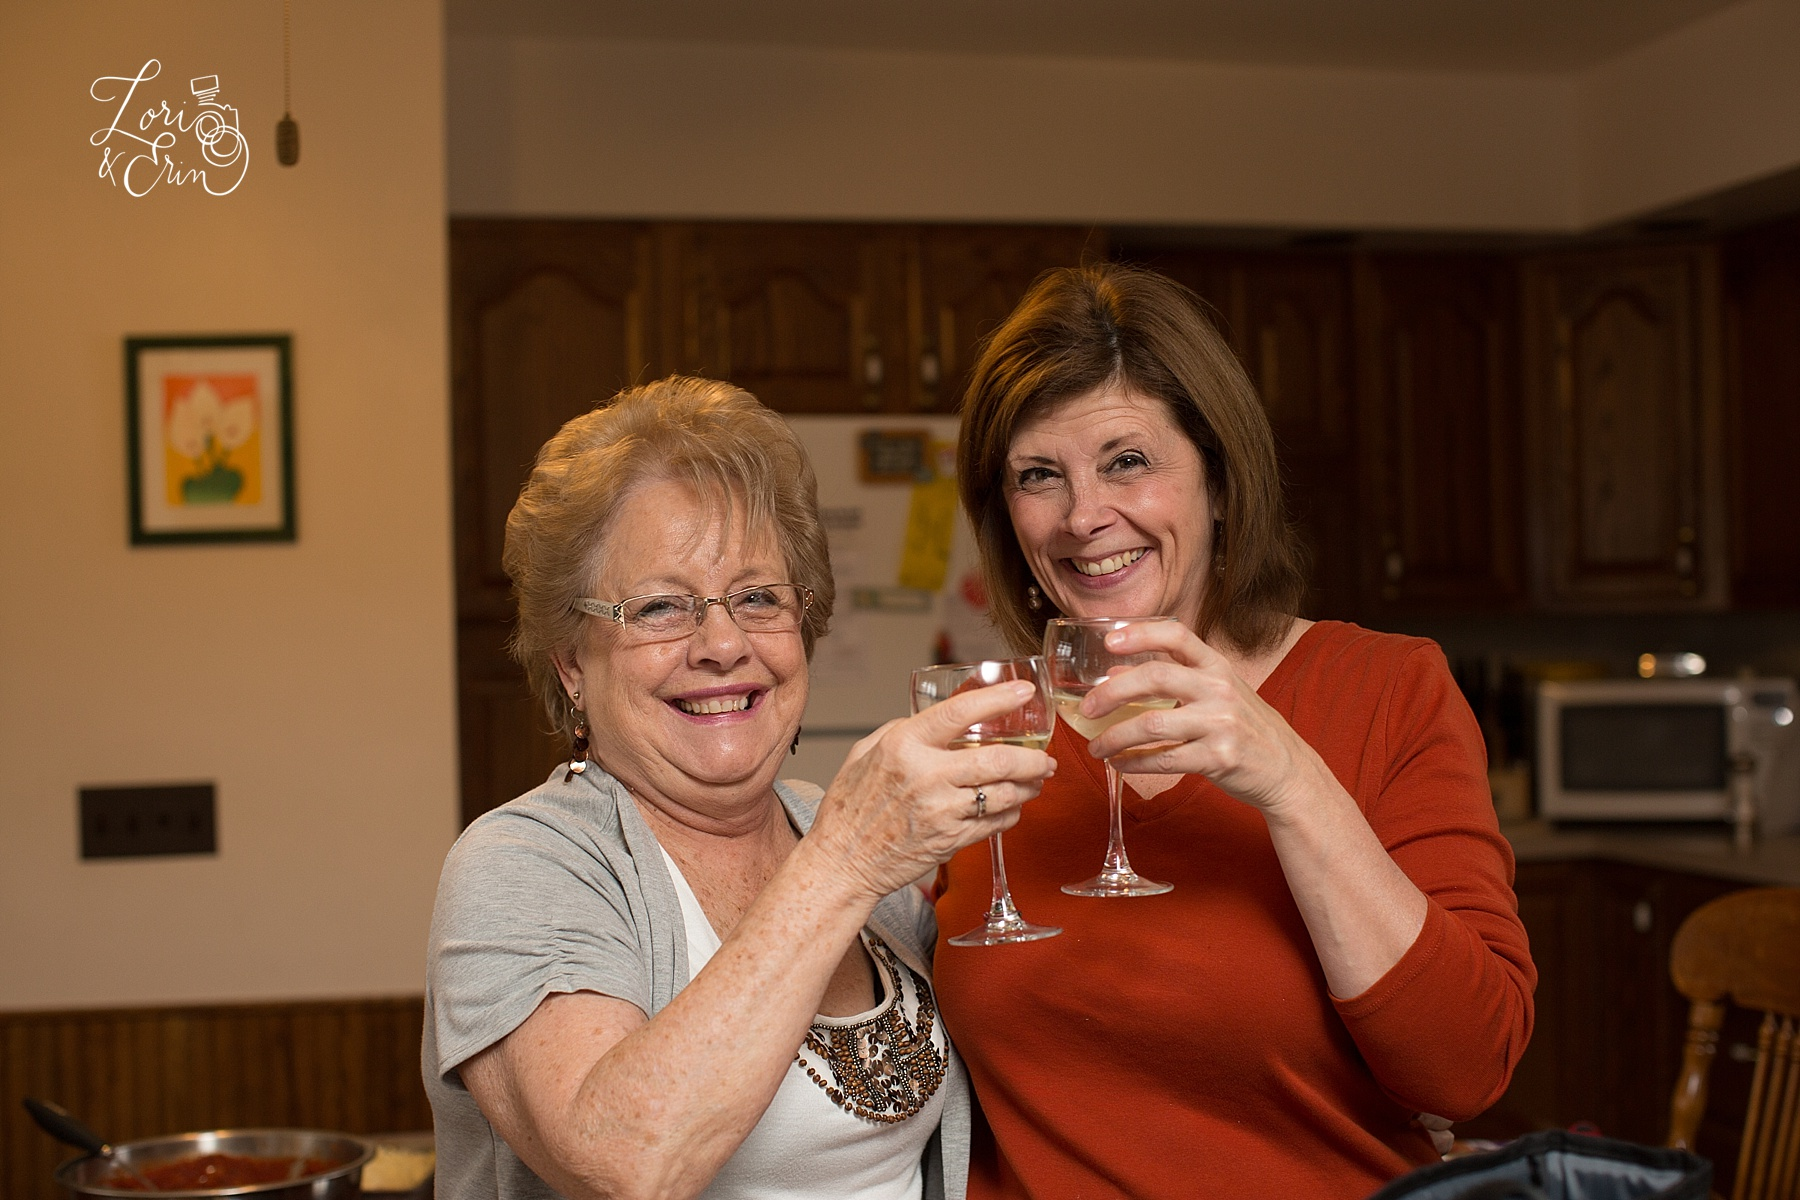 My Momma, and Gram... enjoying life :)